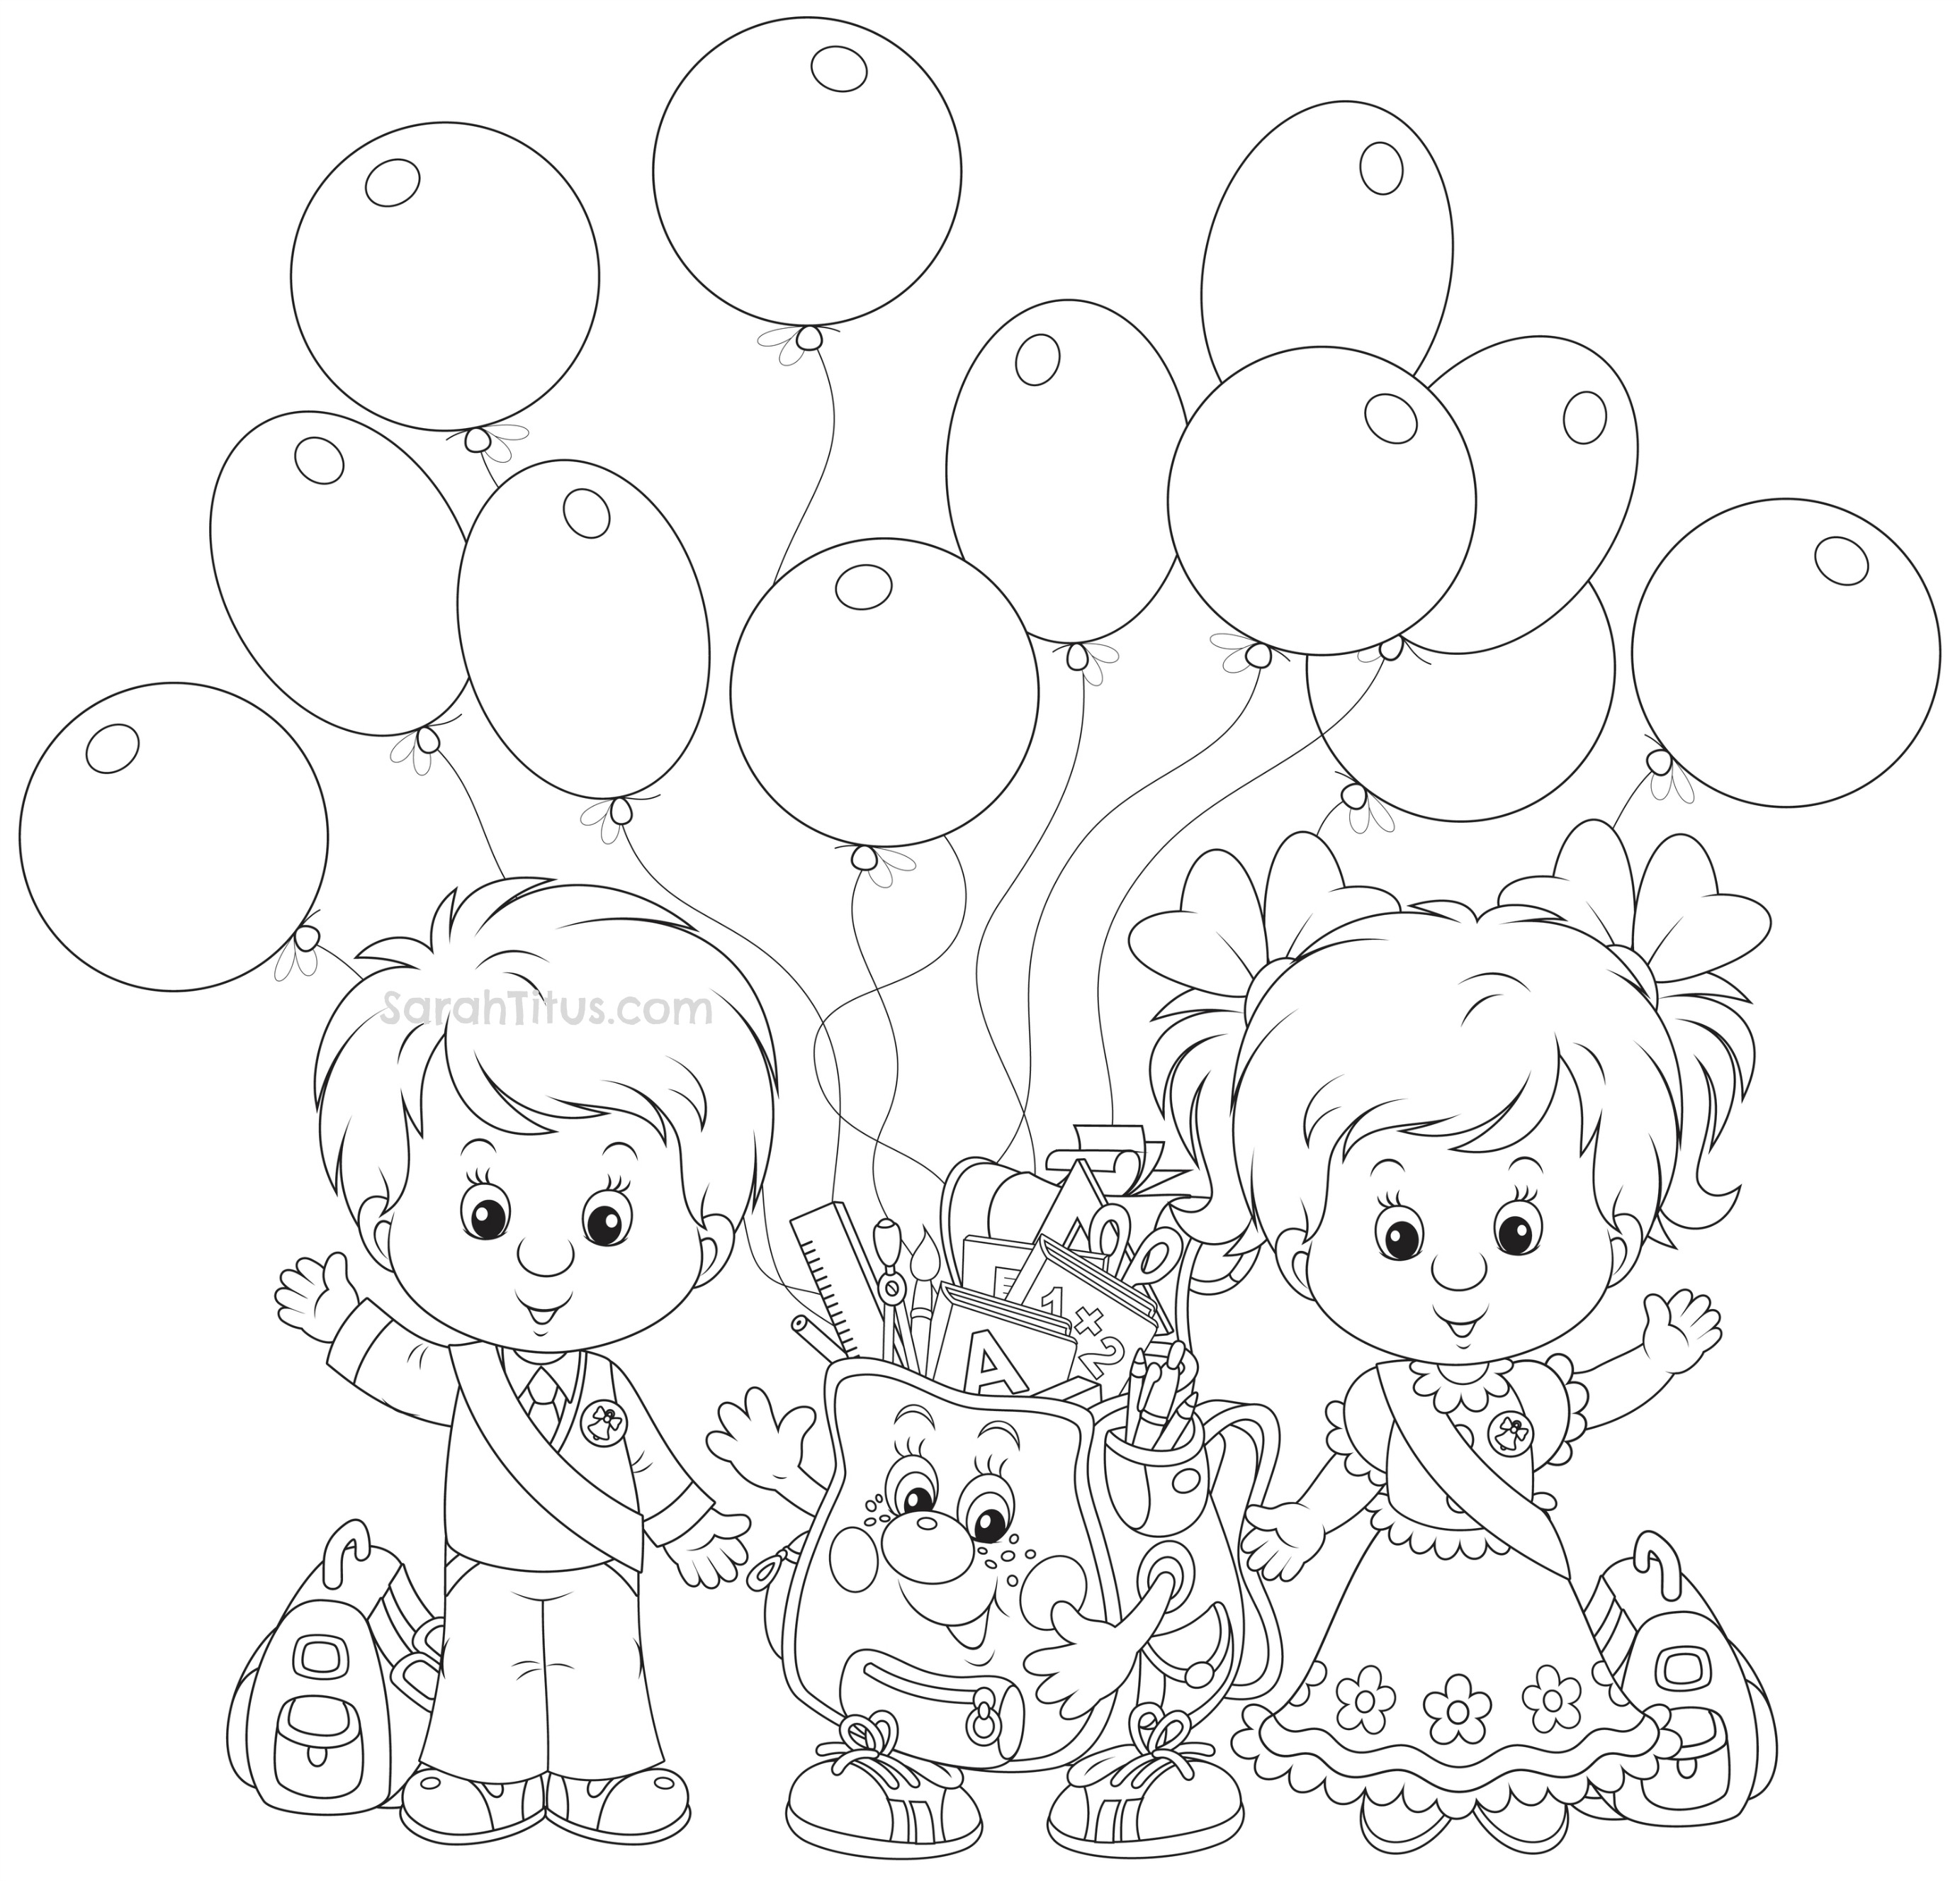 2766x2654 Wel E To Kindergarten Coloring Page Go Digital With Us New